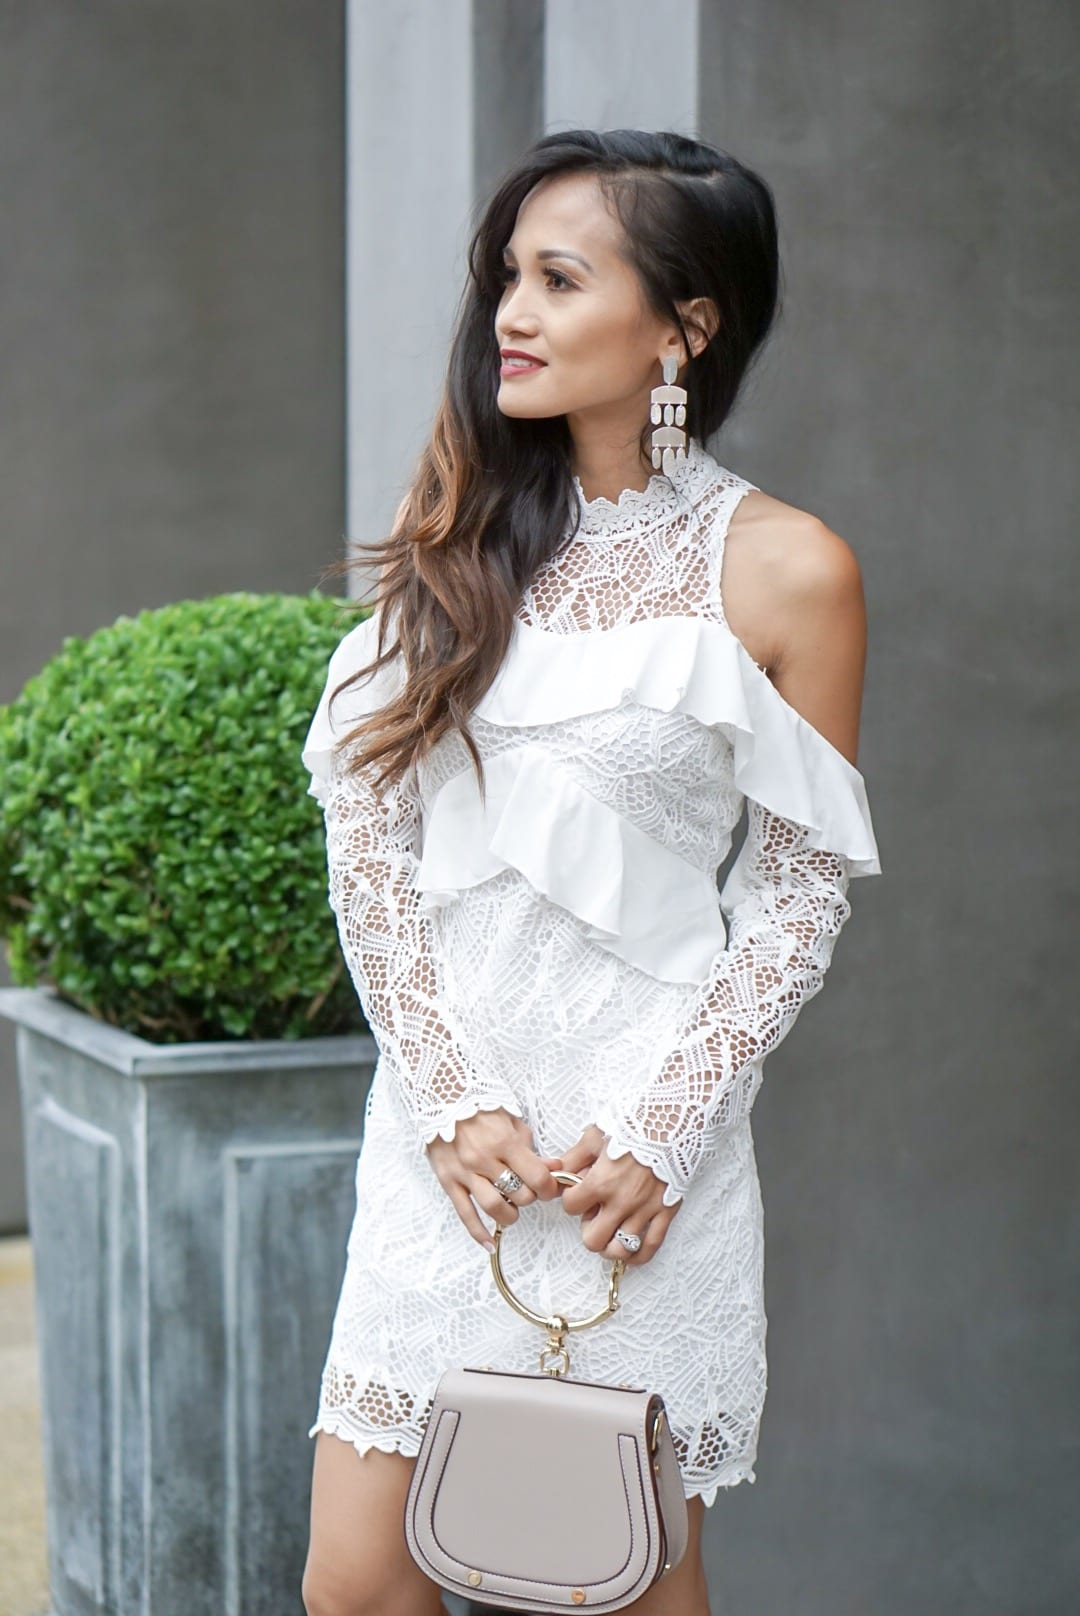 royal wedding, royal wedding, engagement dress, derby dress, bridal shower dress, little white dress, Kendra Scott earrings, nude heels, nude pumps, tea time style, royal wedding style #whitedress, #royalwedding, #bridalshowerdress